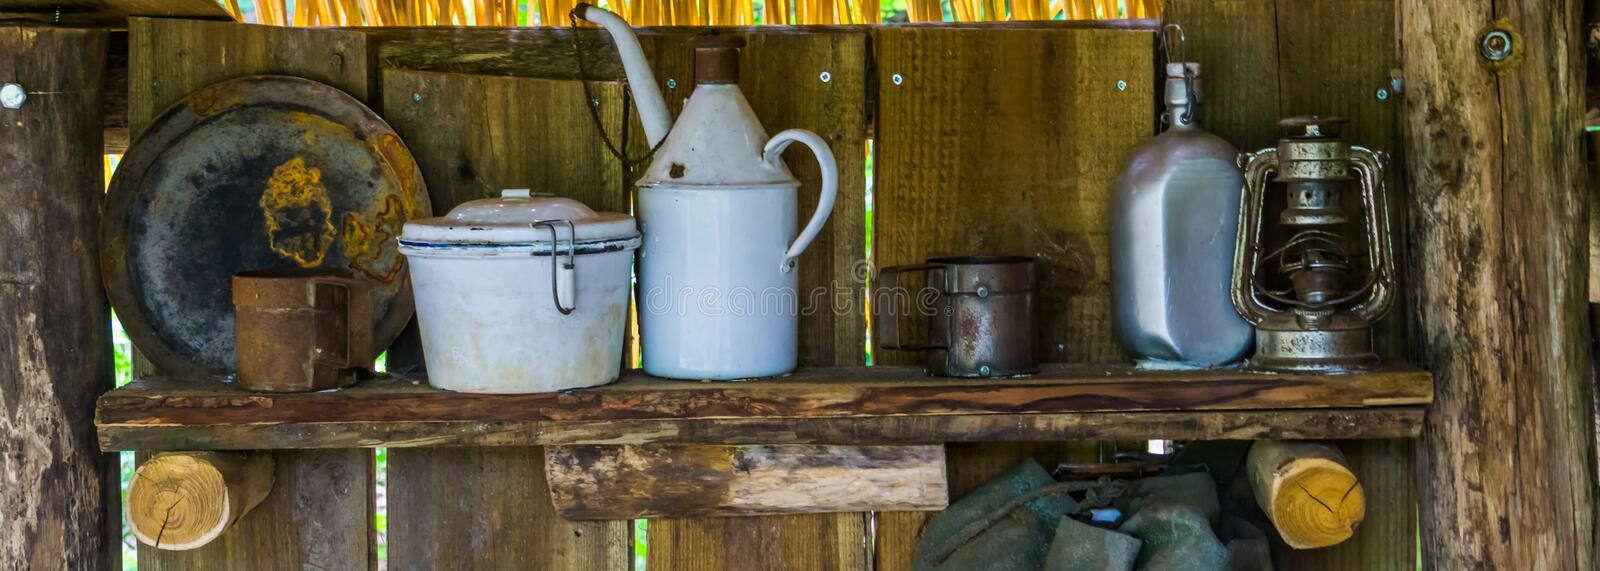 Old vintage tableware on a wooden shelf, some rusty old cups and plates, historical and primitive equipment. A old vintage tableware on a wooden shelf, some stock image